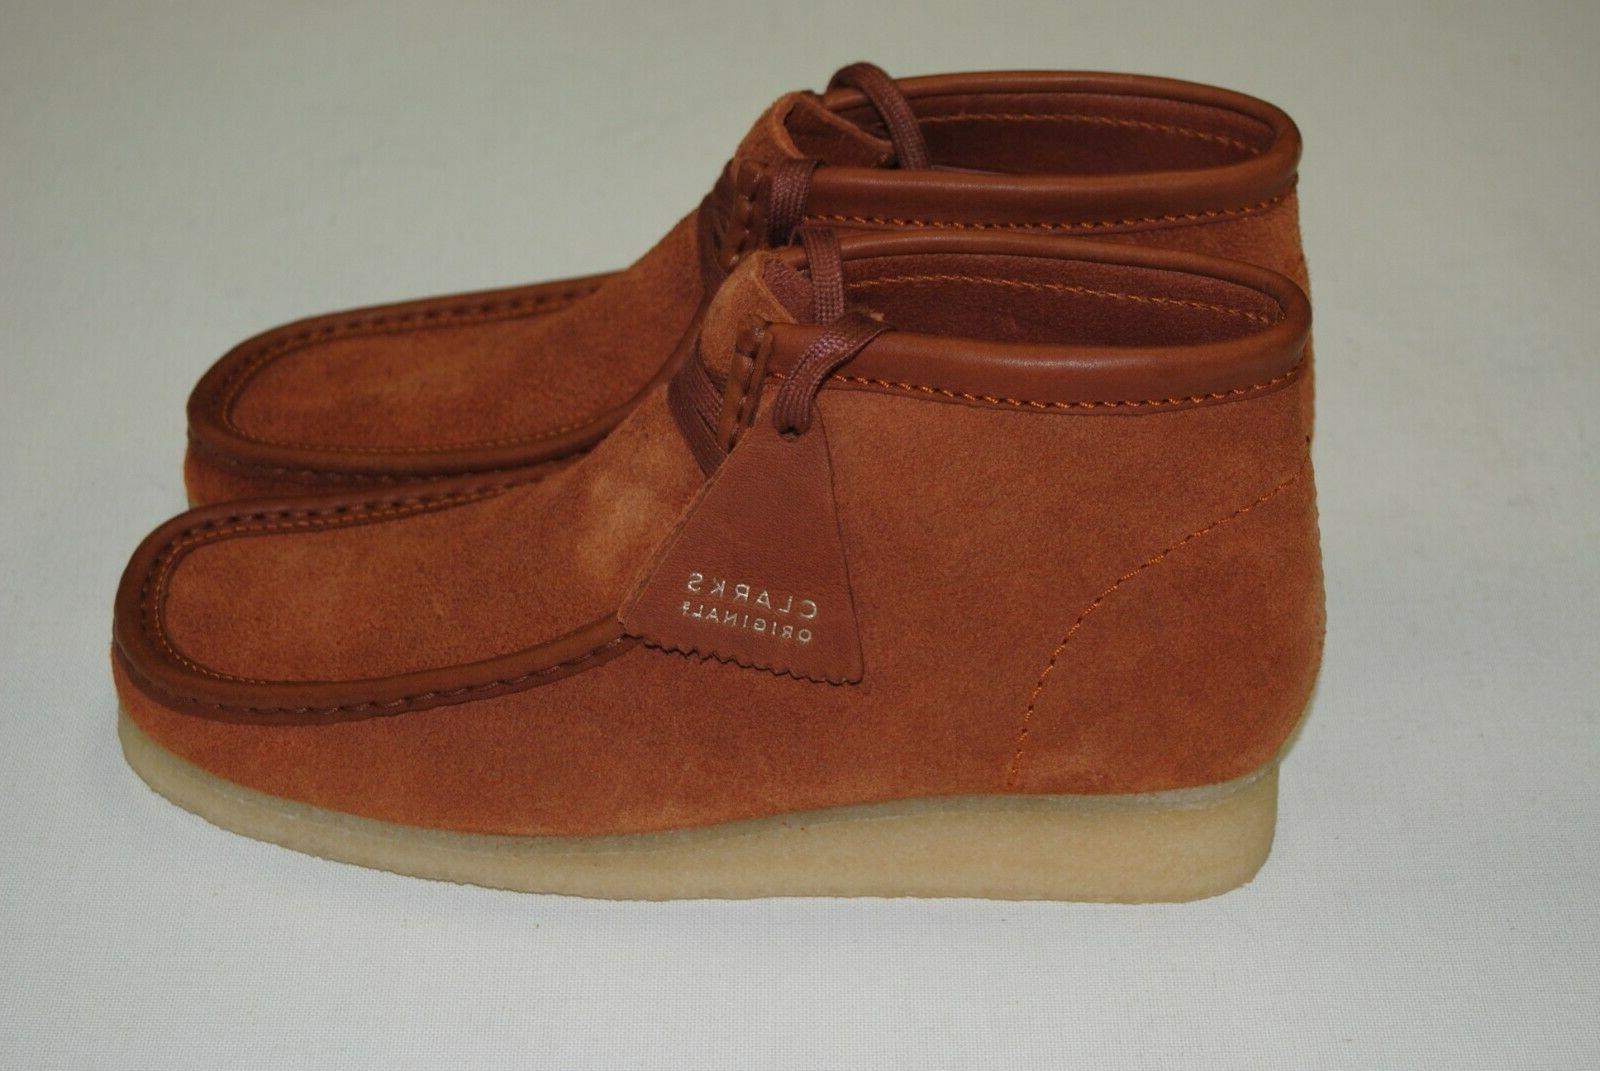 NEW MEN'S WALLABEE BOOTS SUEDE